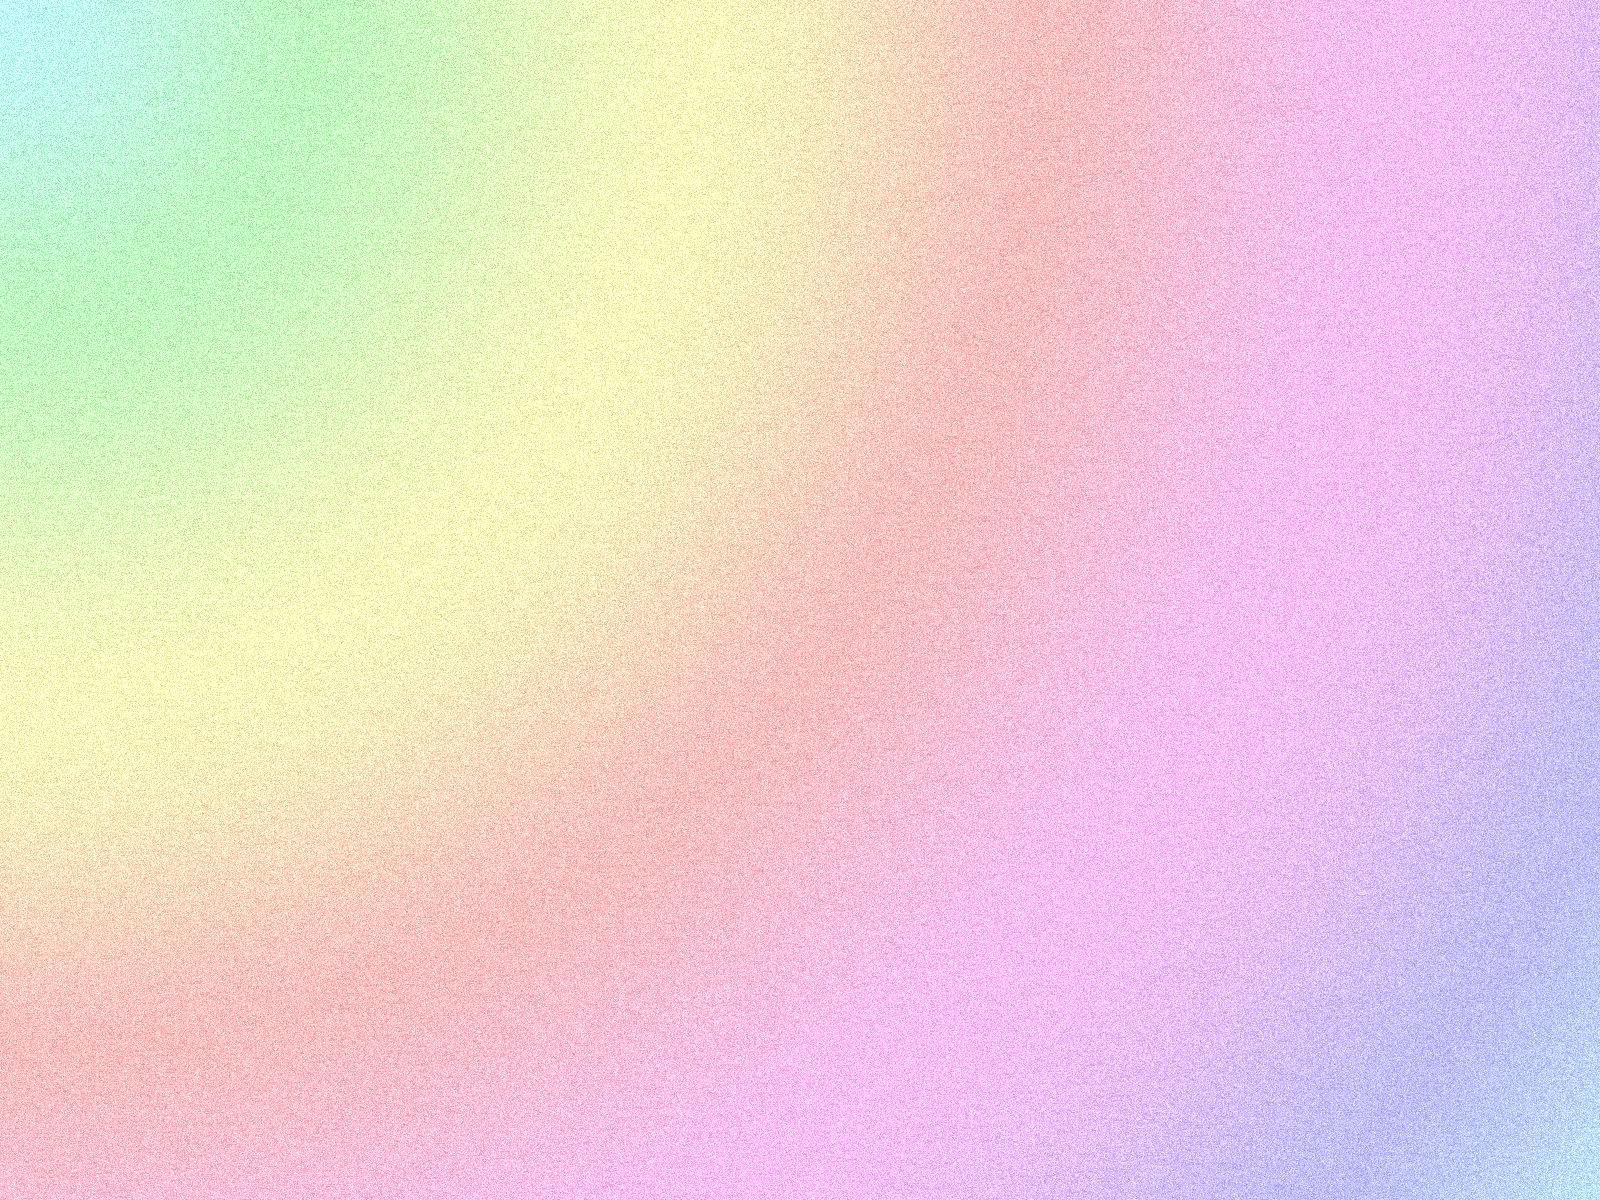 Rainbow Tumblr Backgrounds - Wallpaper Cave